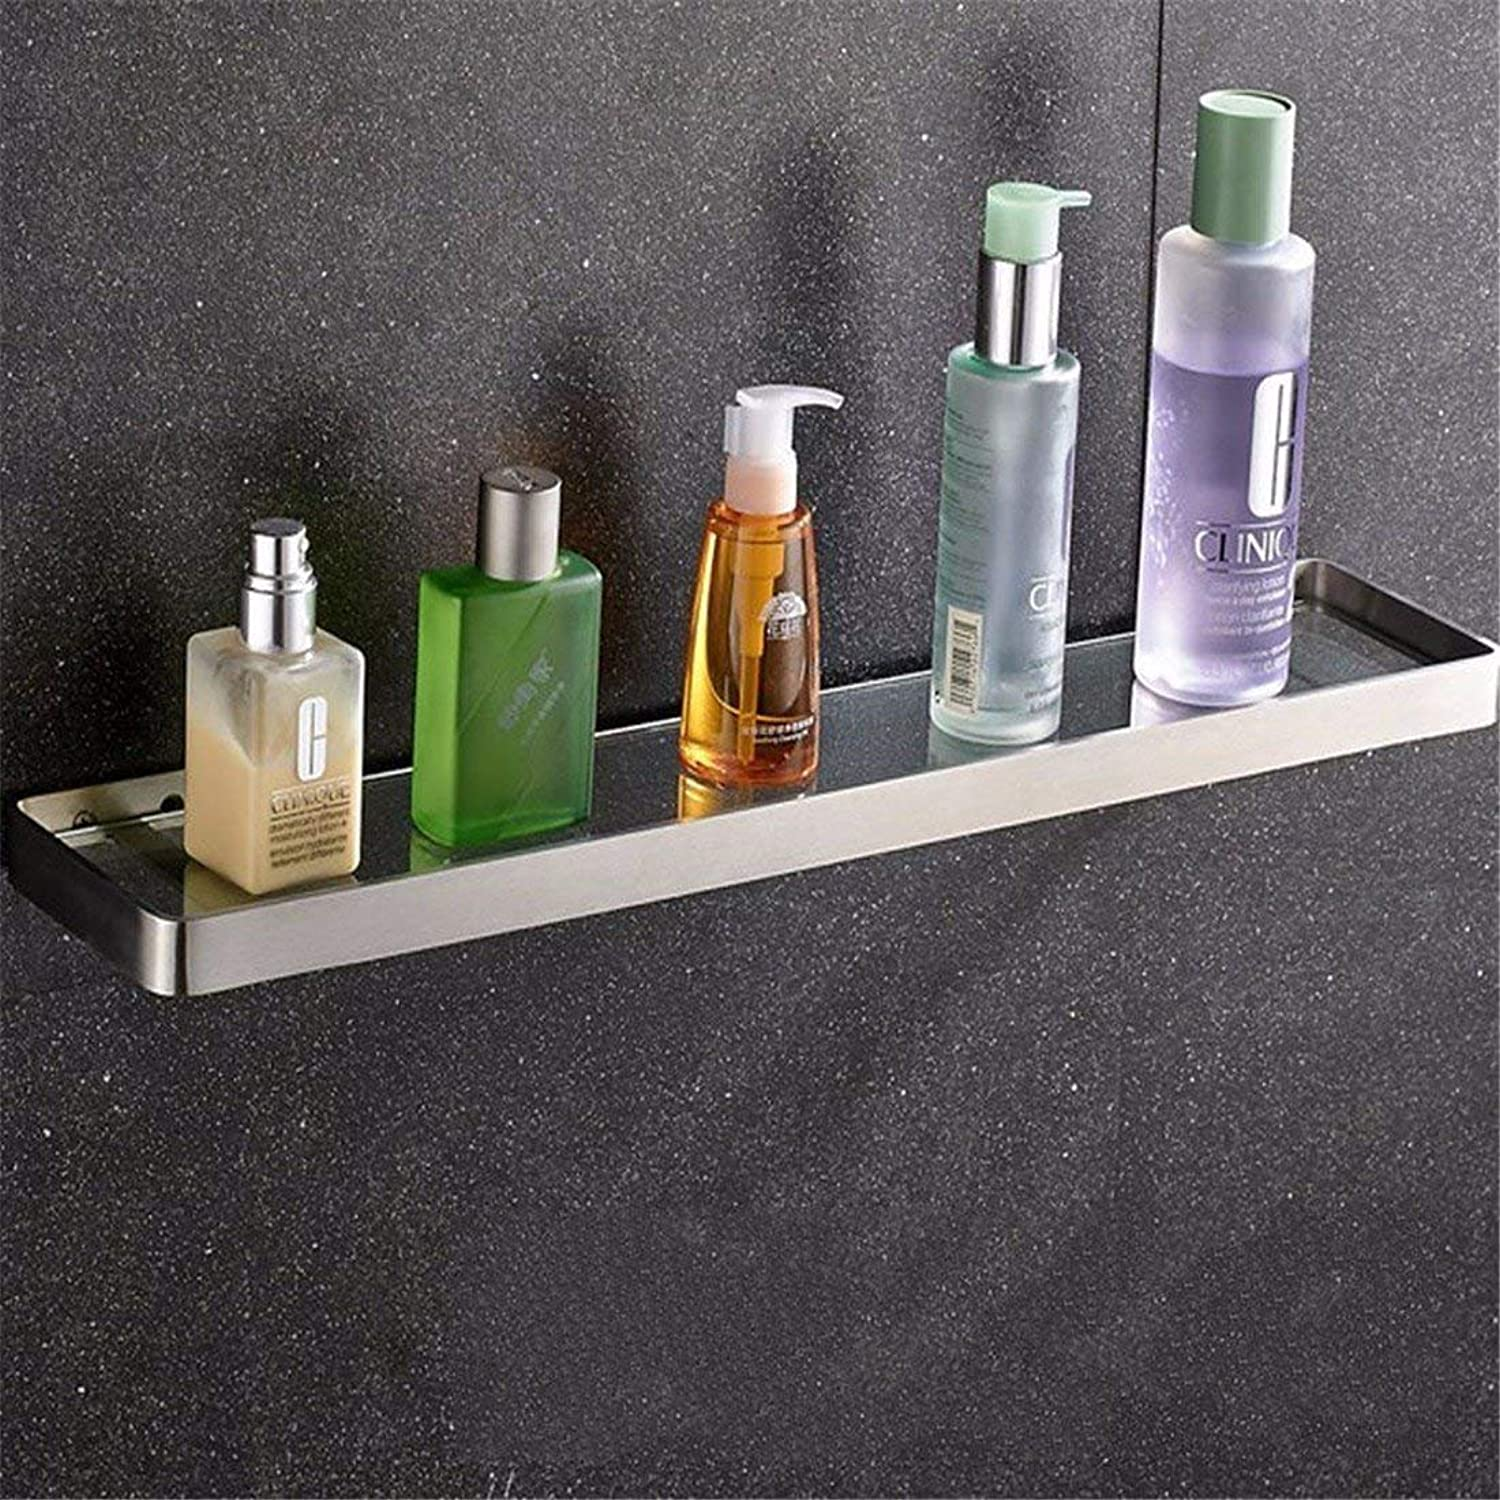 304 Contemporary European Dimensions Stainless Square Bathroom, WC, Toilet Paper, Brush Rack Rack Rack,1